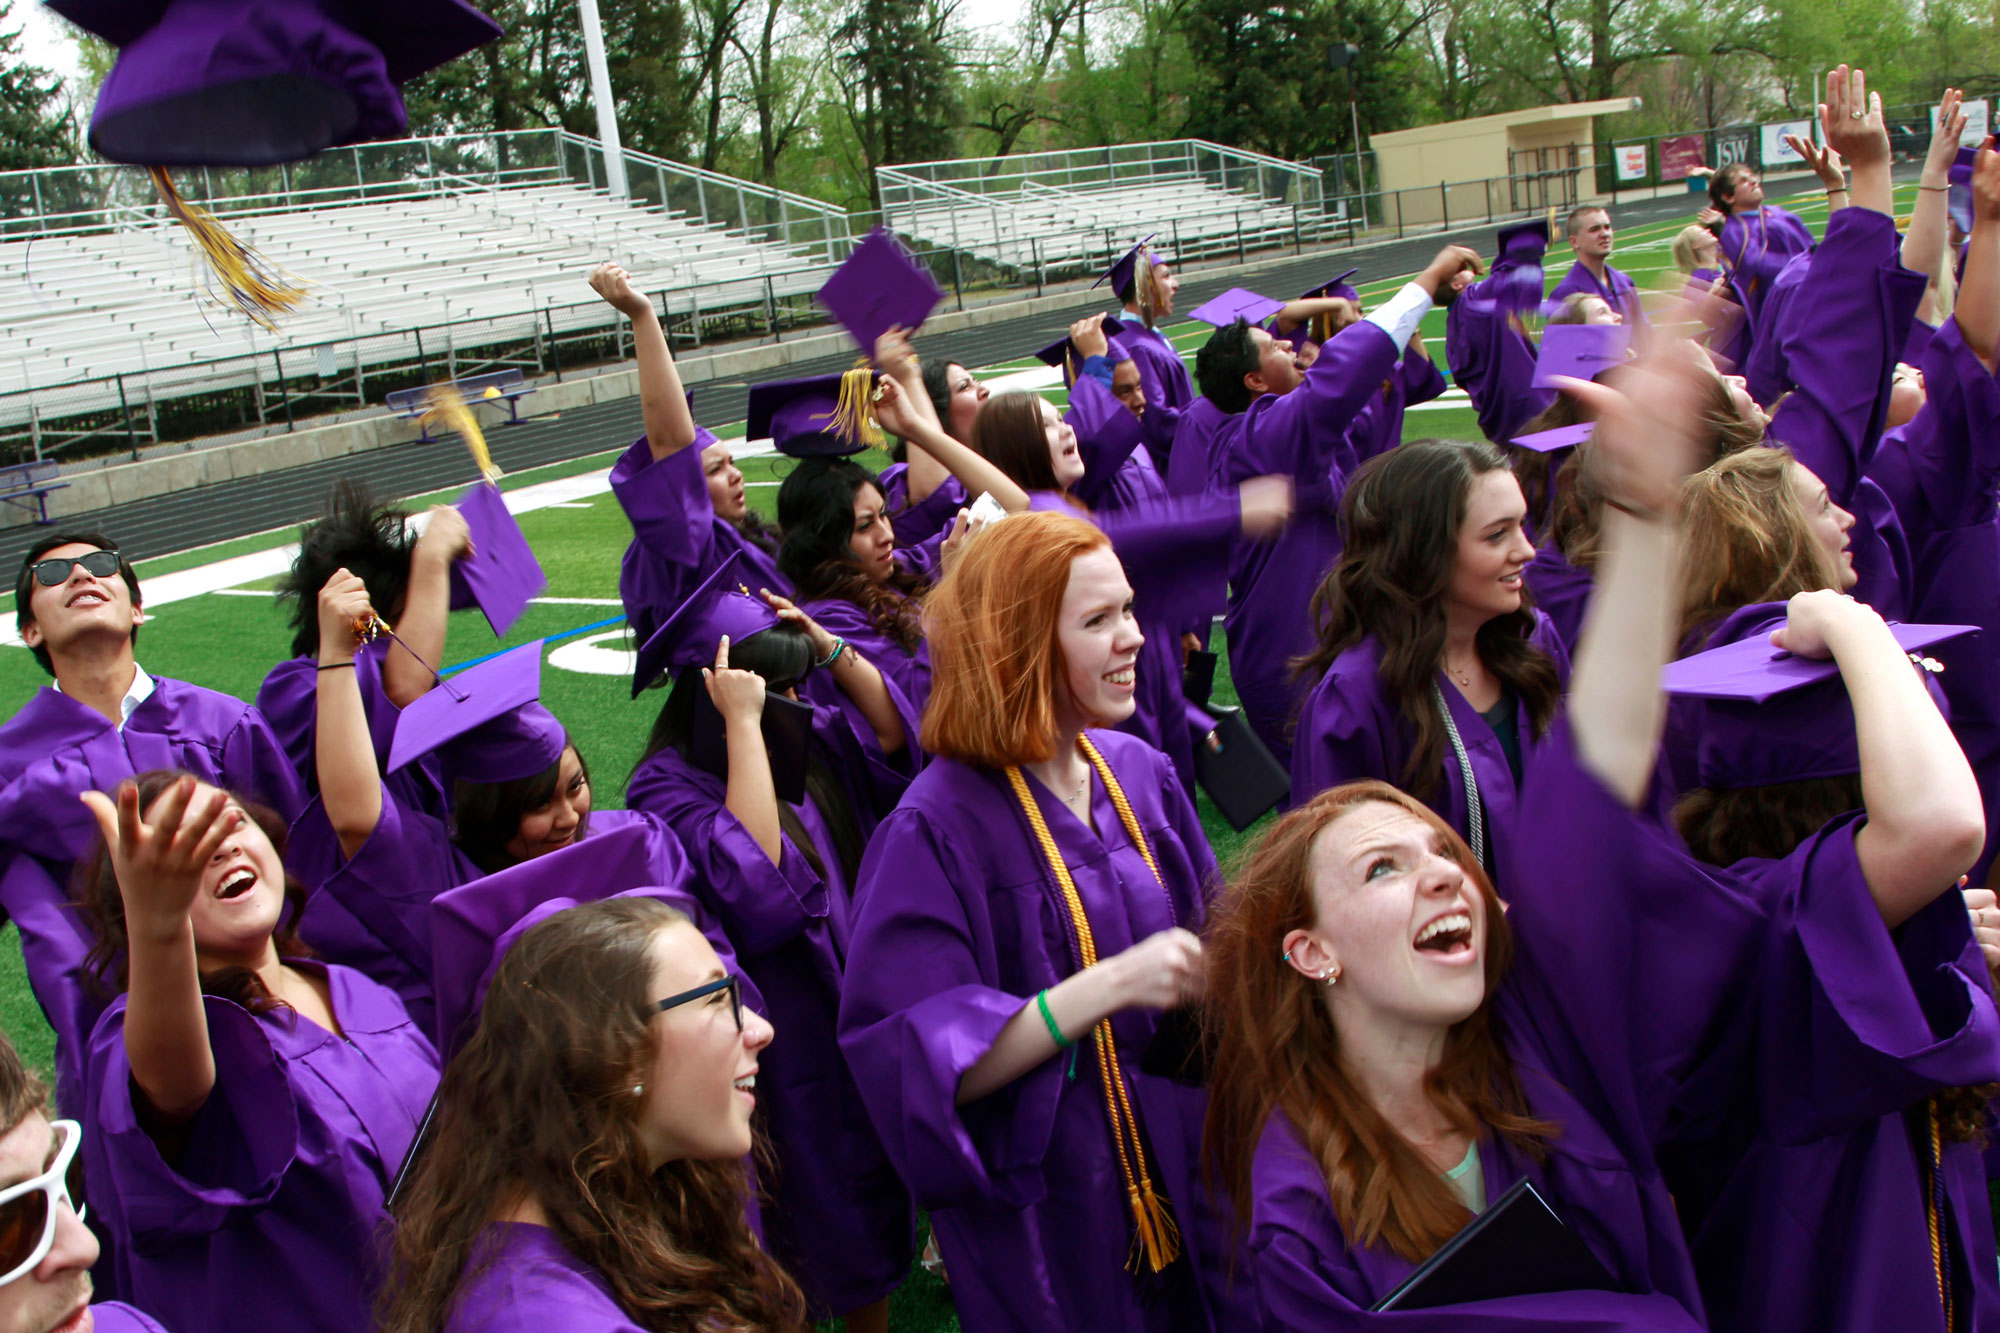 Graduates throw their mortarboards into the air in celebration after receiving their diplomas, following the commencement ceremony at Boulder High School, in Boulder, Colo. on Saturday May 18, 2013.